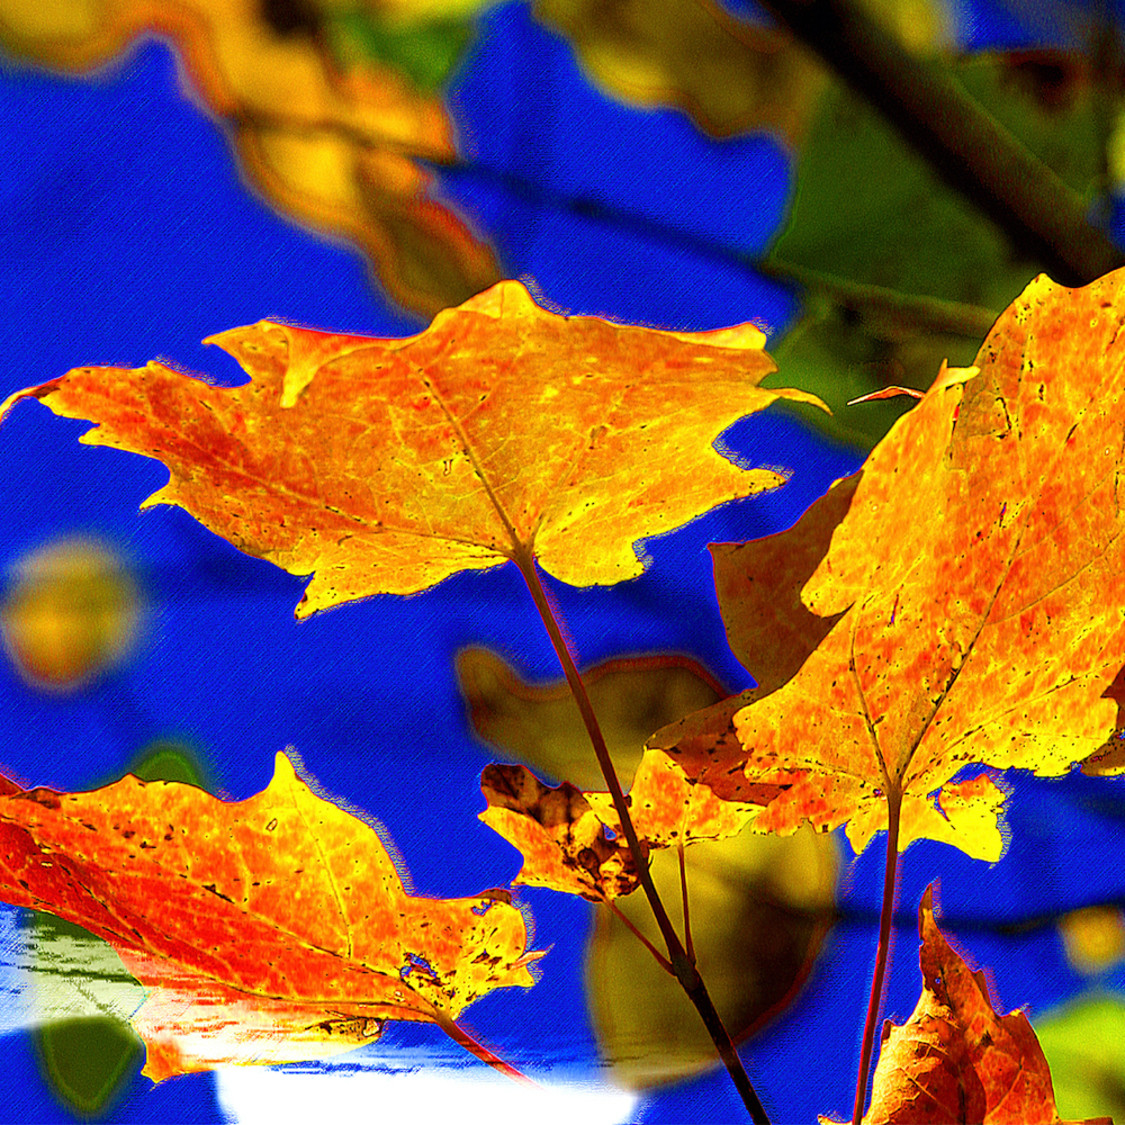 Autumn leaves t77uwl